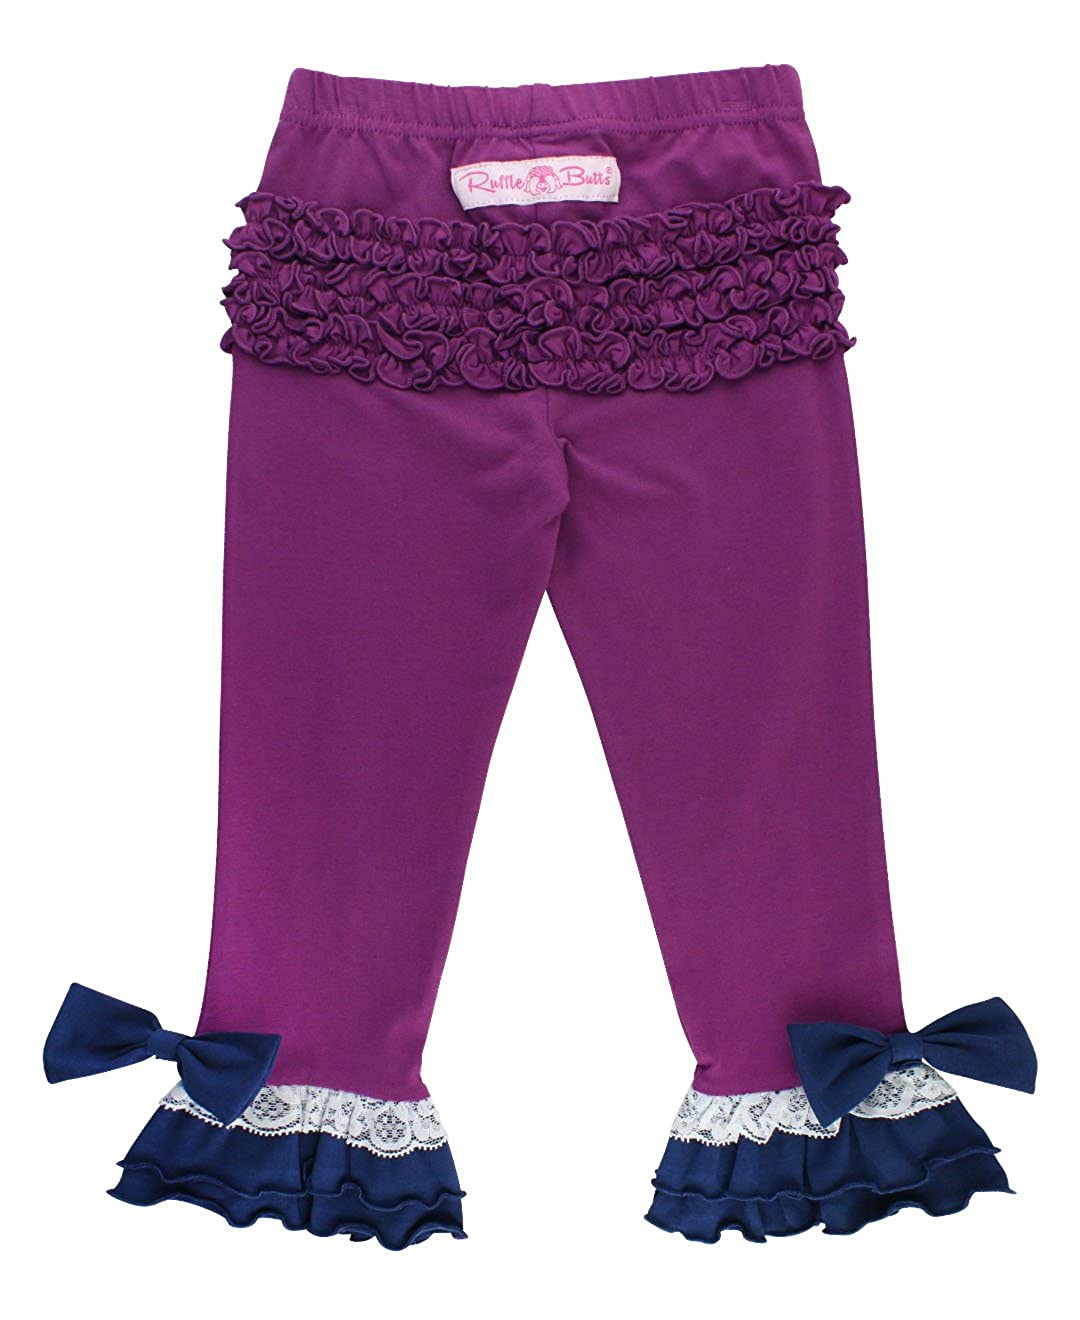 RuffleButts Girls Contrast Knit Ruffle Pants w//Lace Purple 7